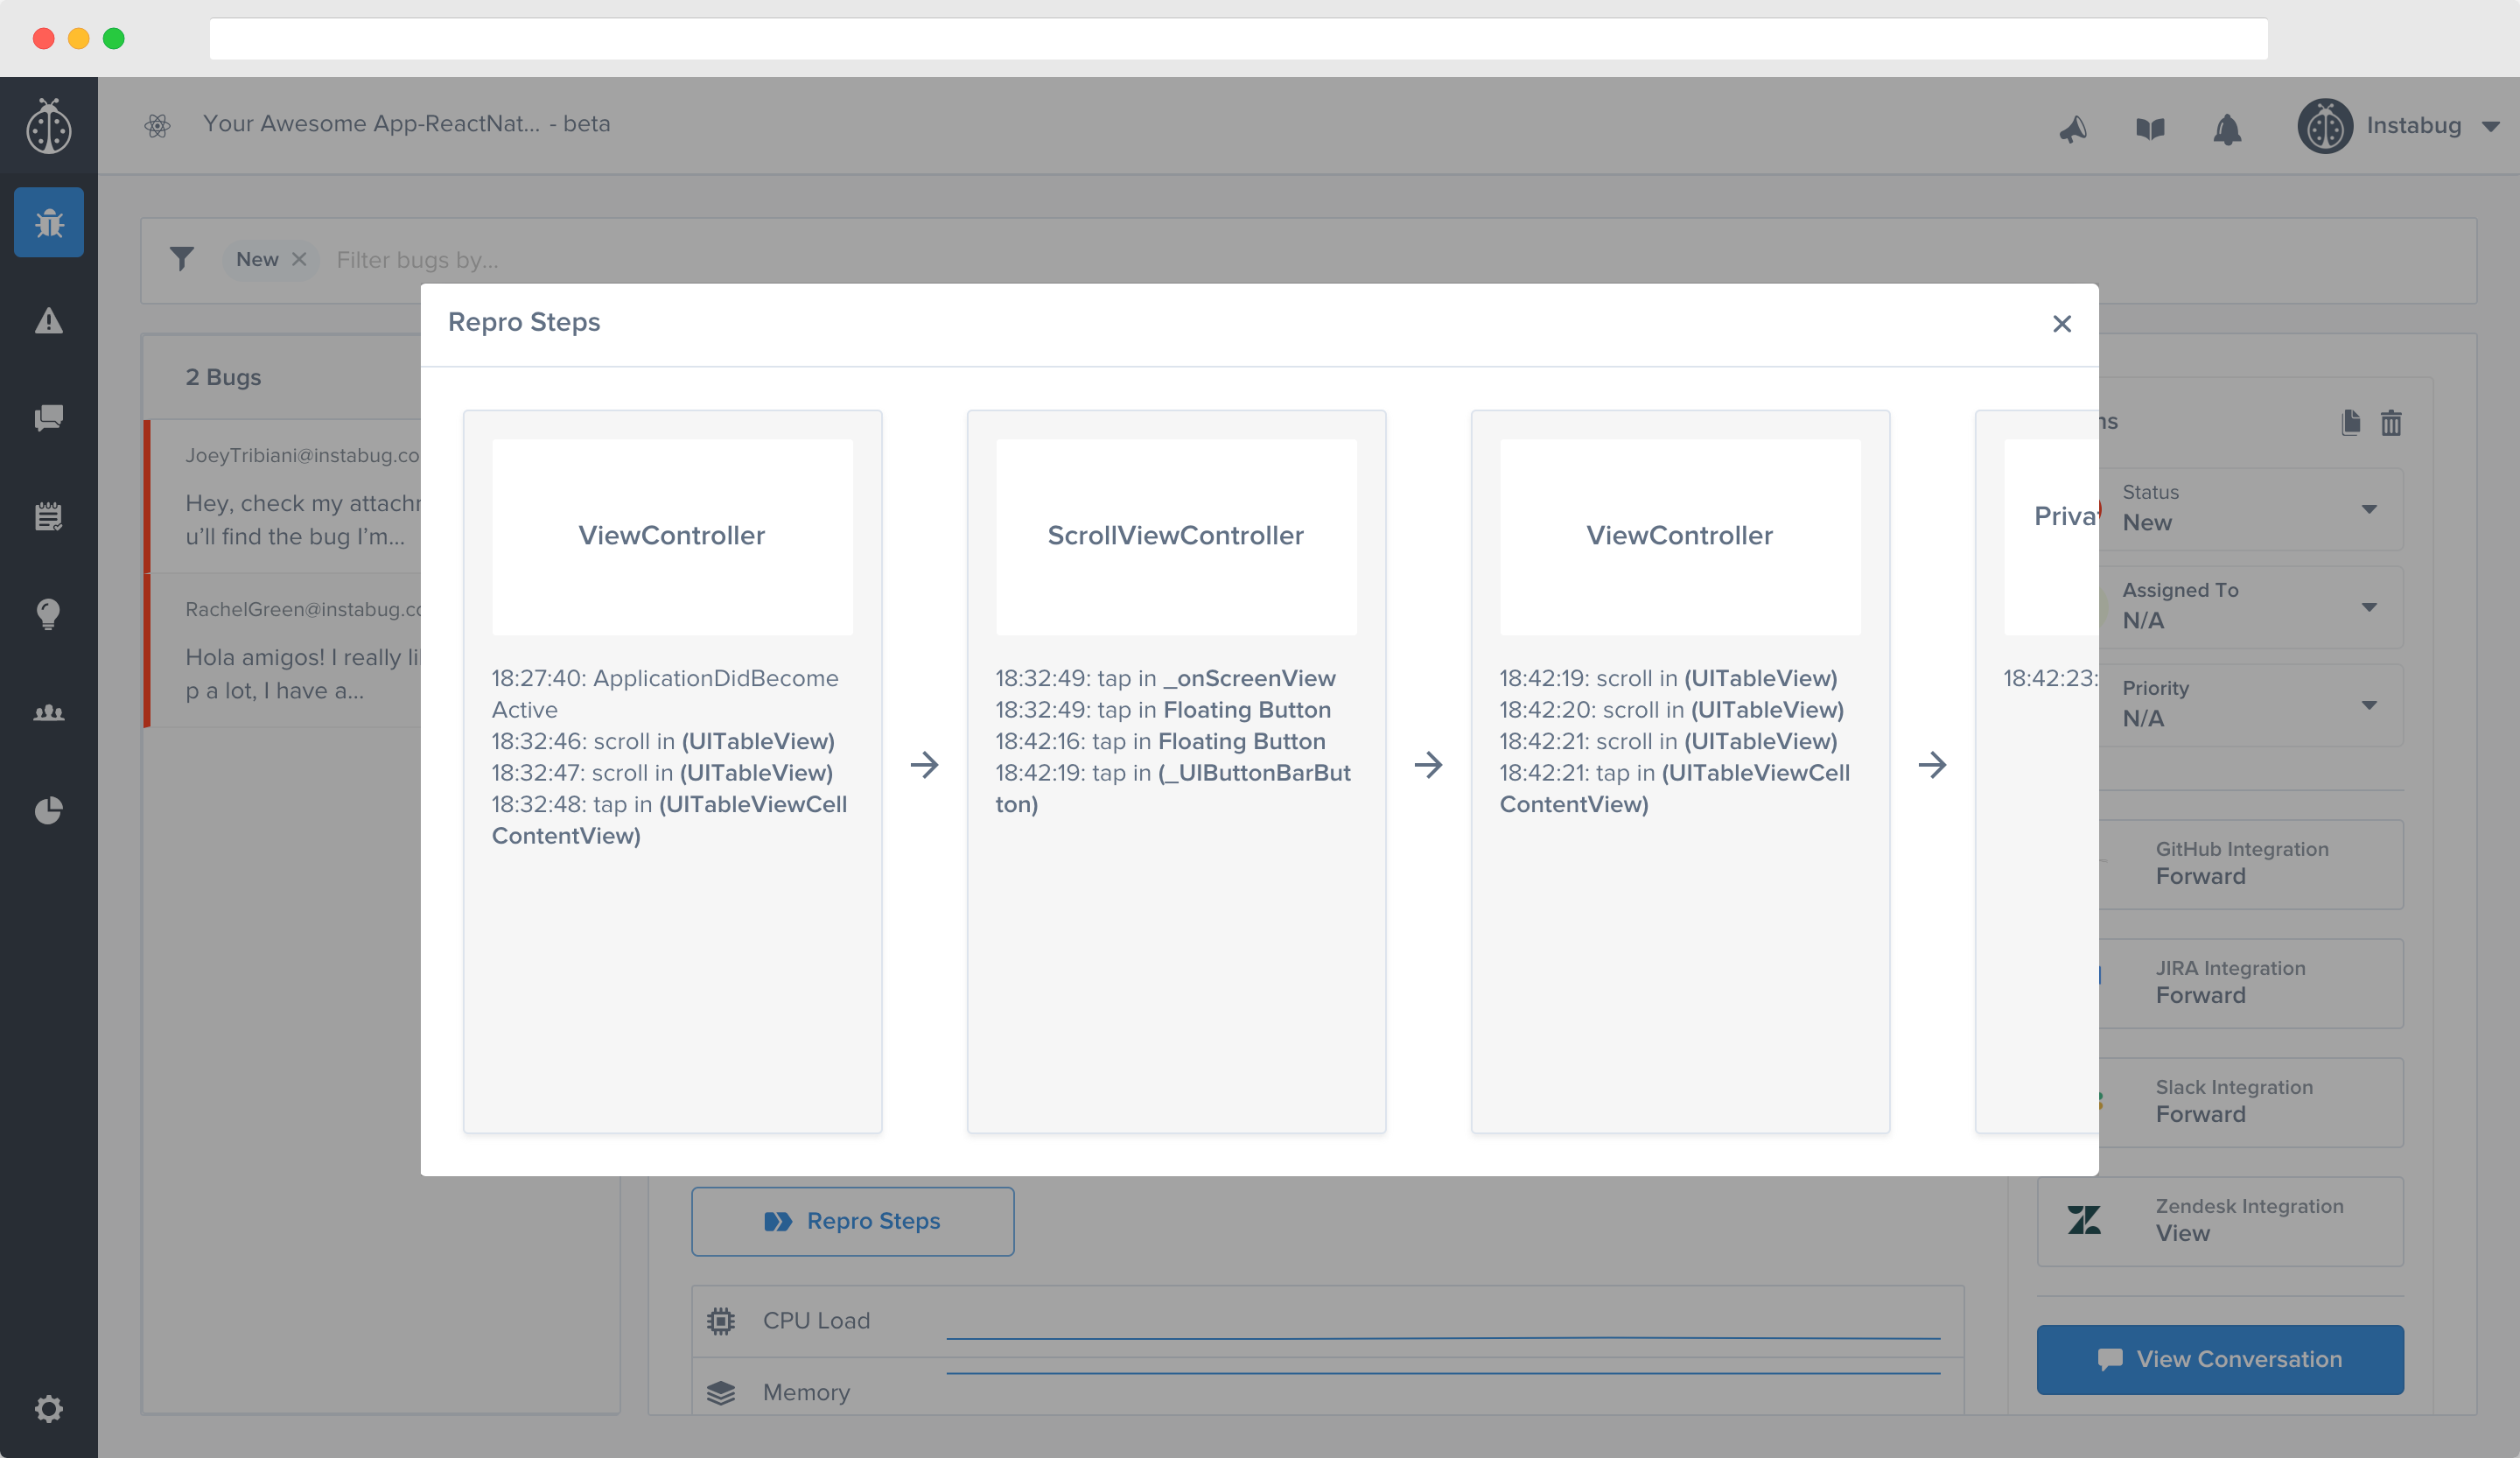 An example of Repro Steps in the Instabug dashboard.